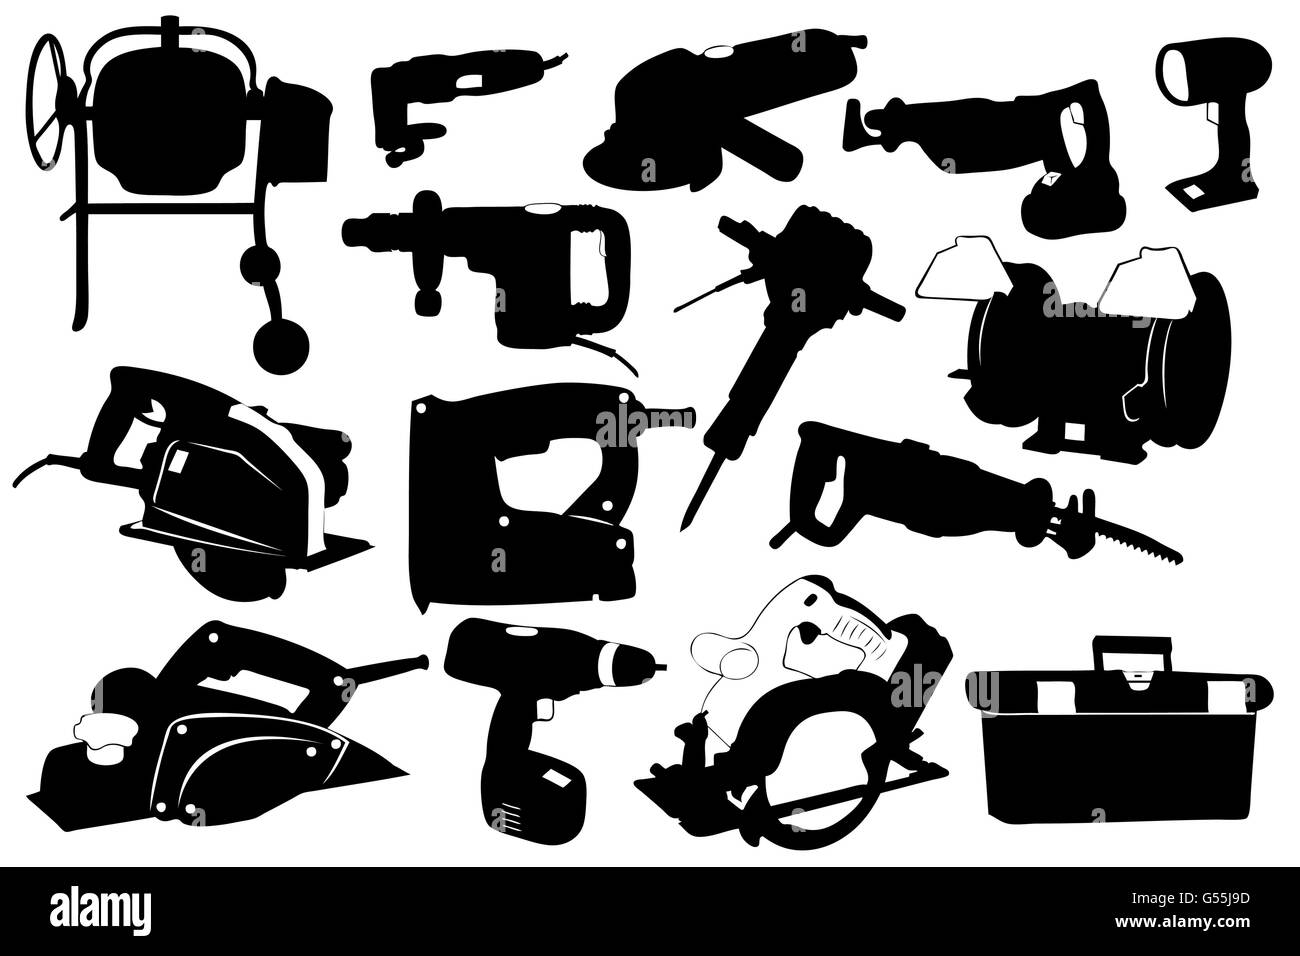 Electric tools isolated - Stock Image